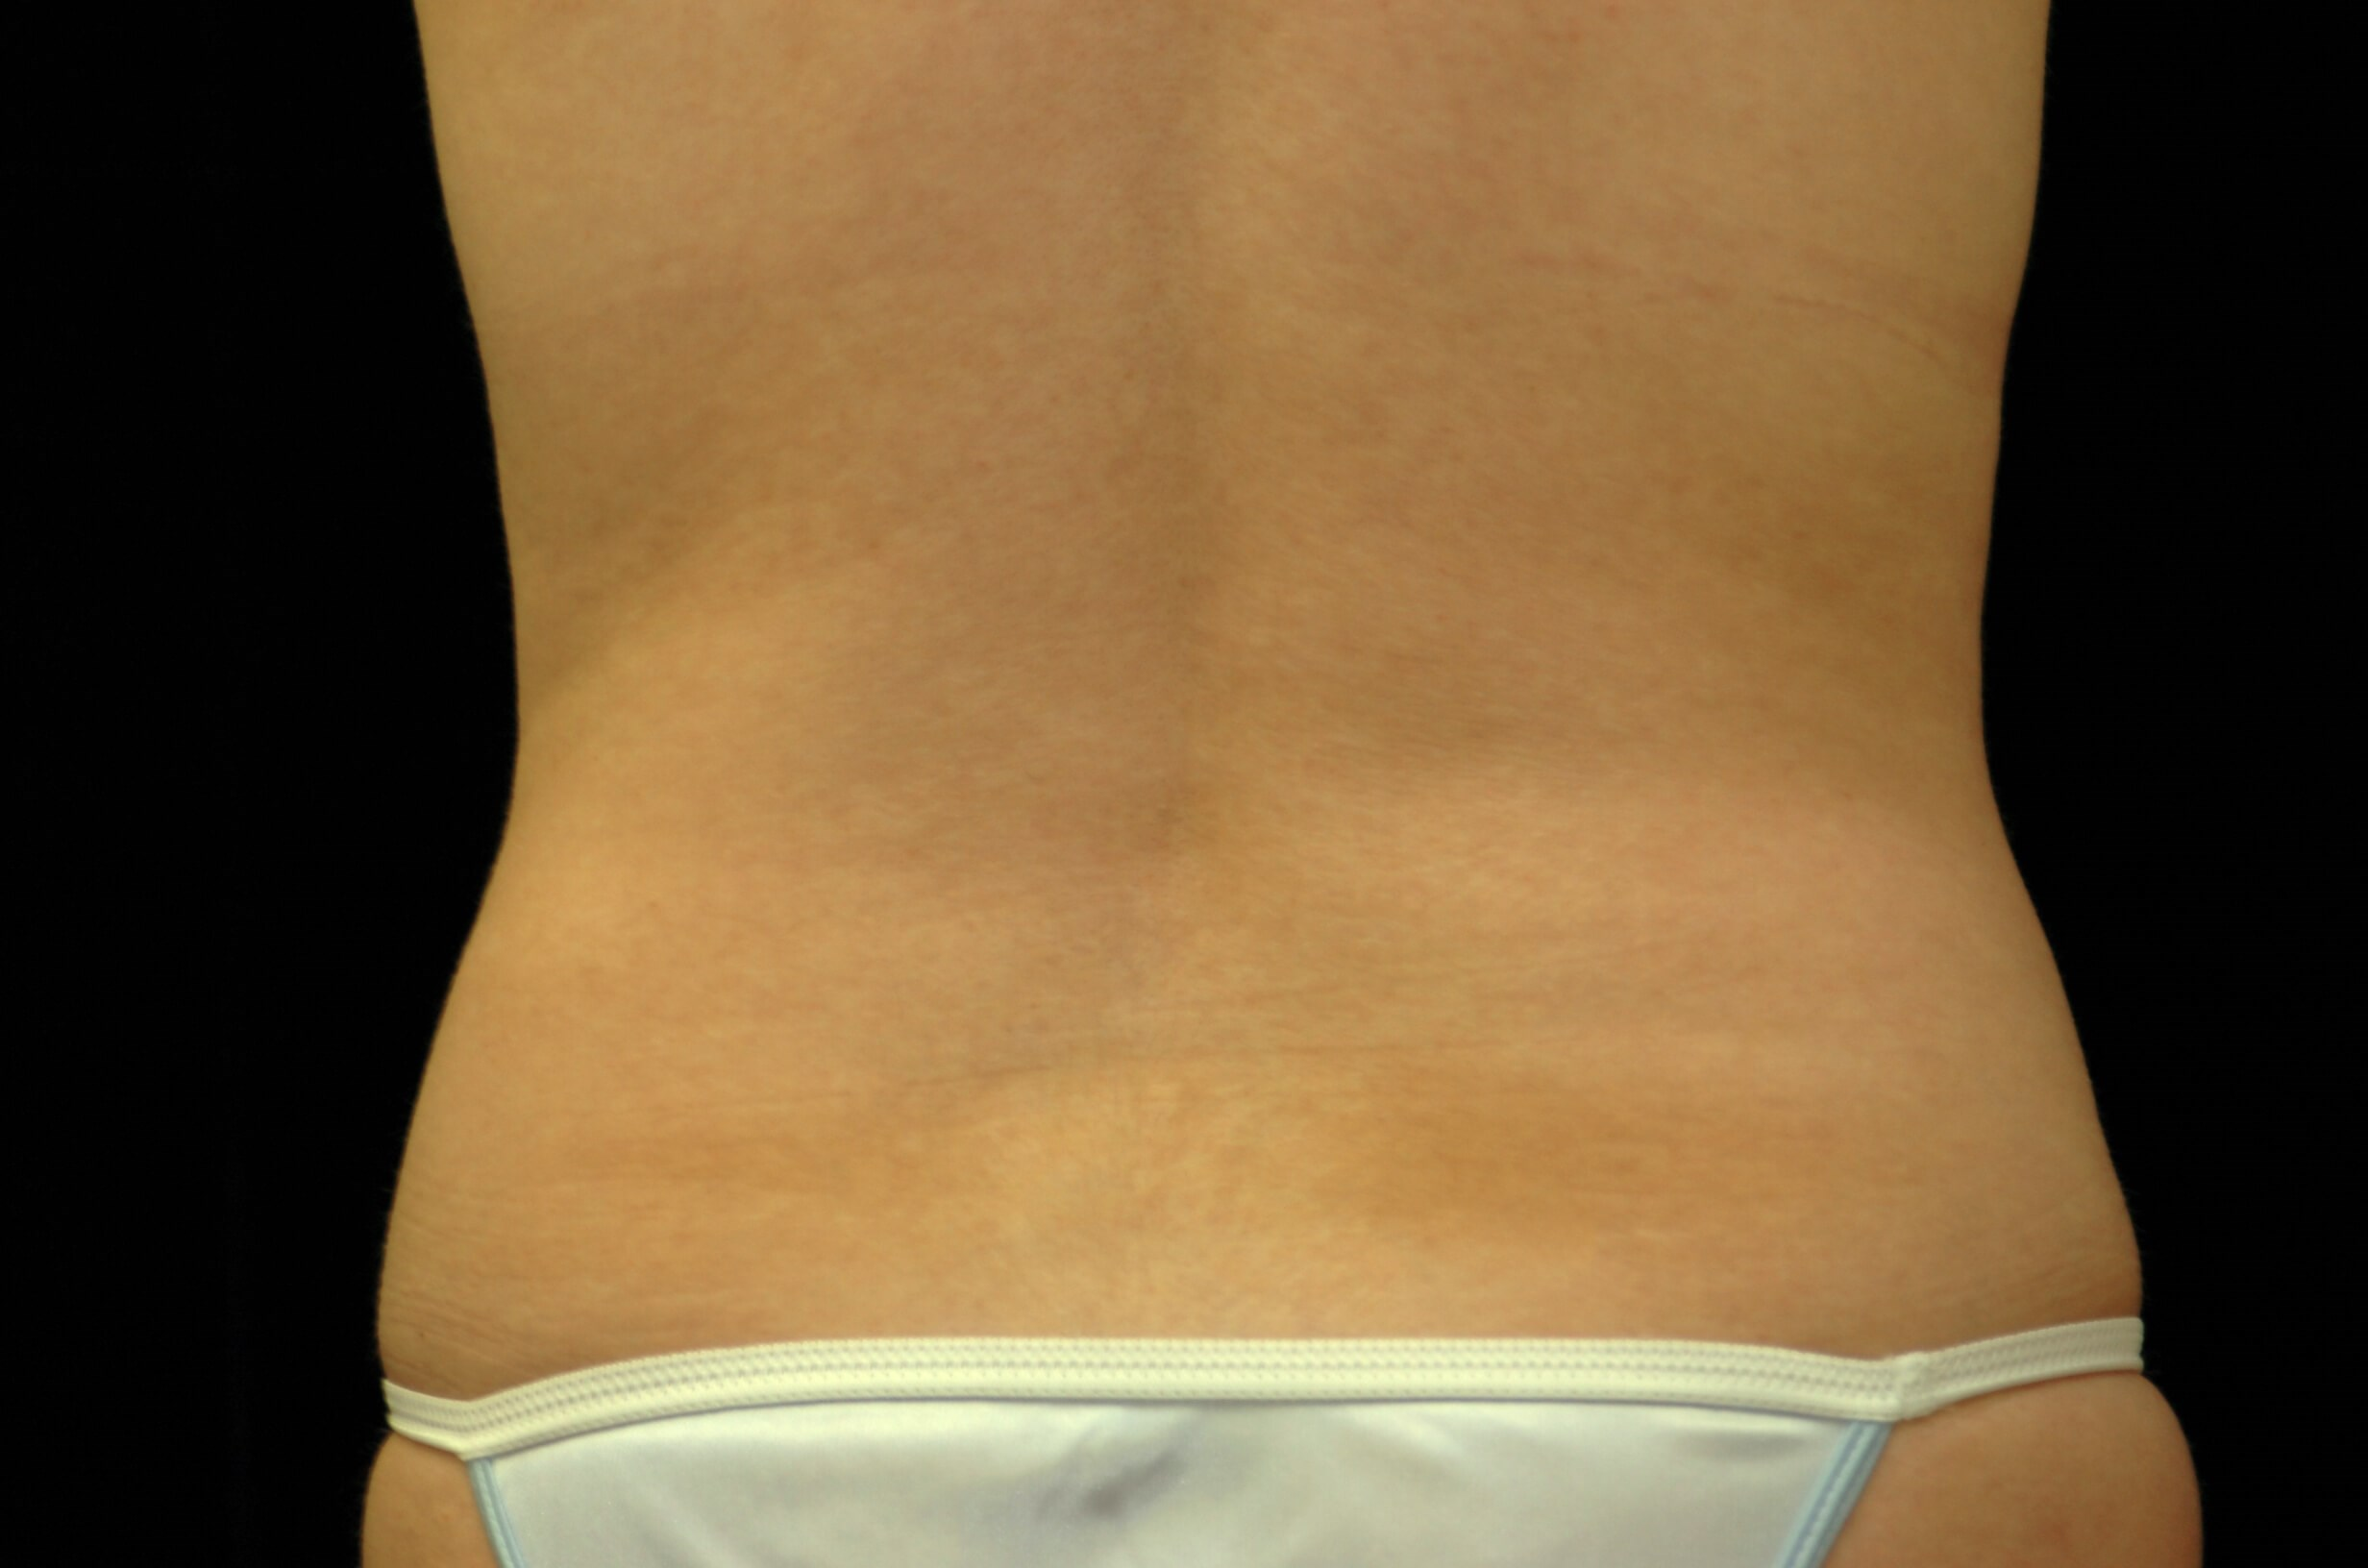 BODY CONTOURING TO ABDOMEN AND FLANKS FOR DALLAS, TEXAS WOMAN